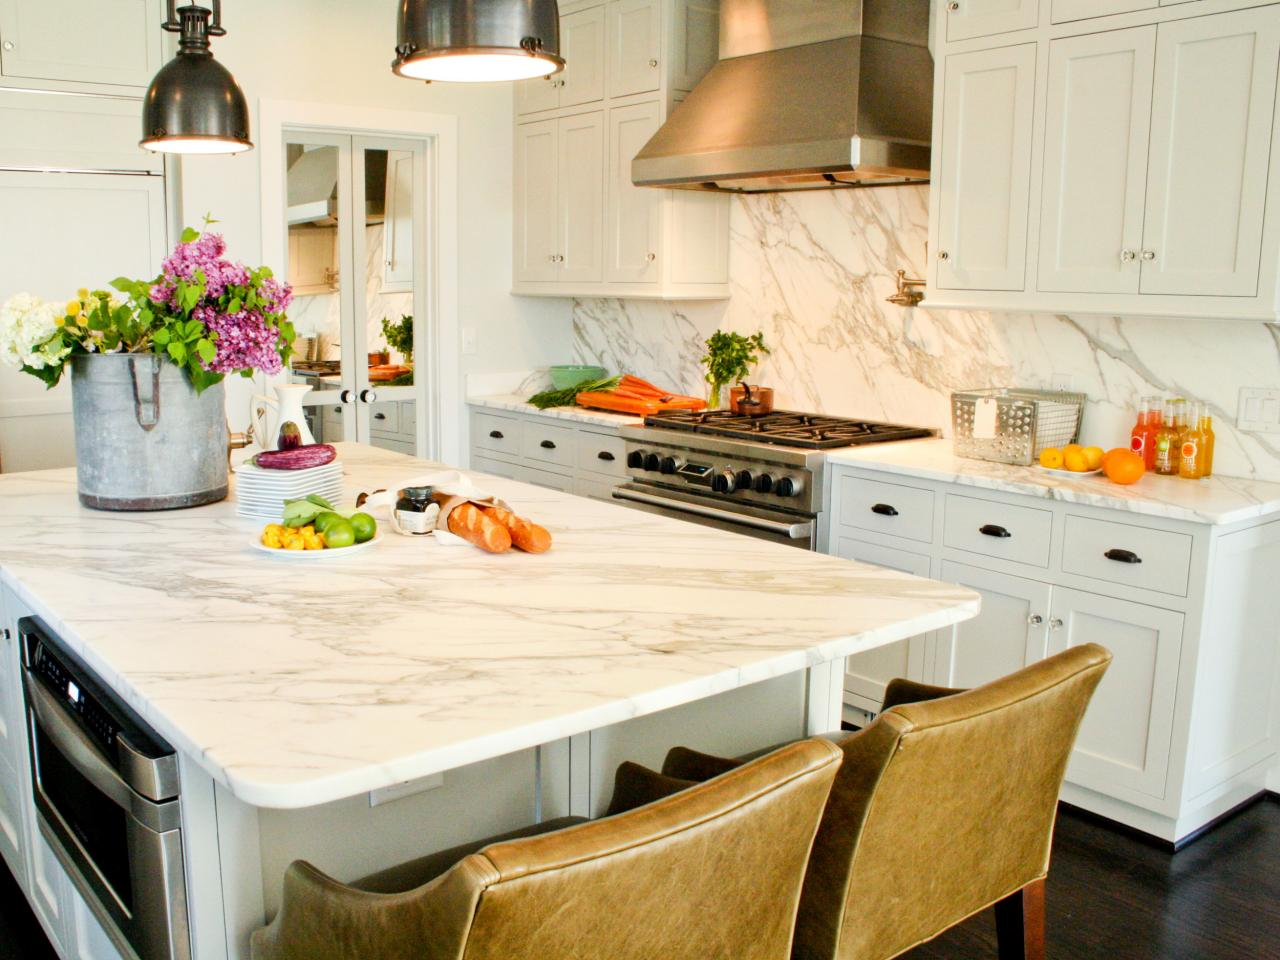 countertops mountblanc caesarstone kitchen quartz countertop silver lace